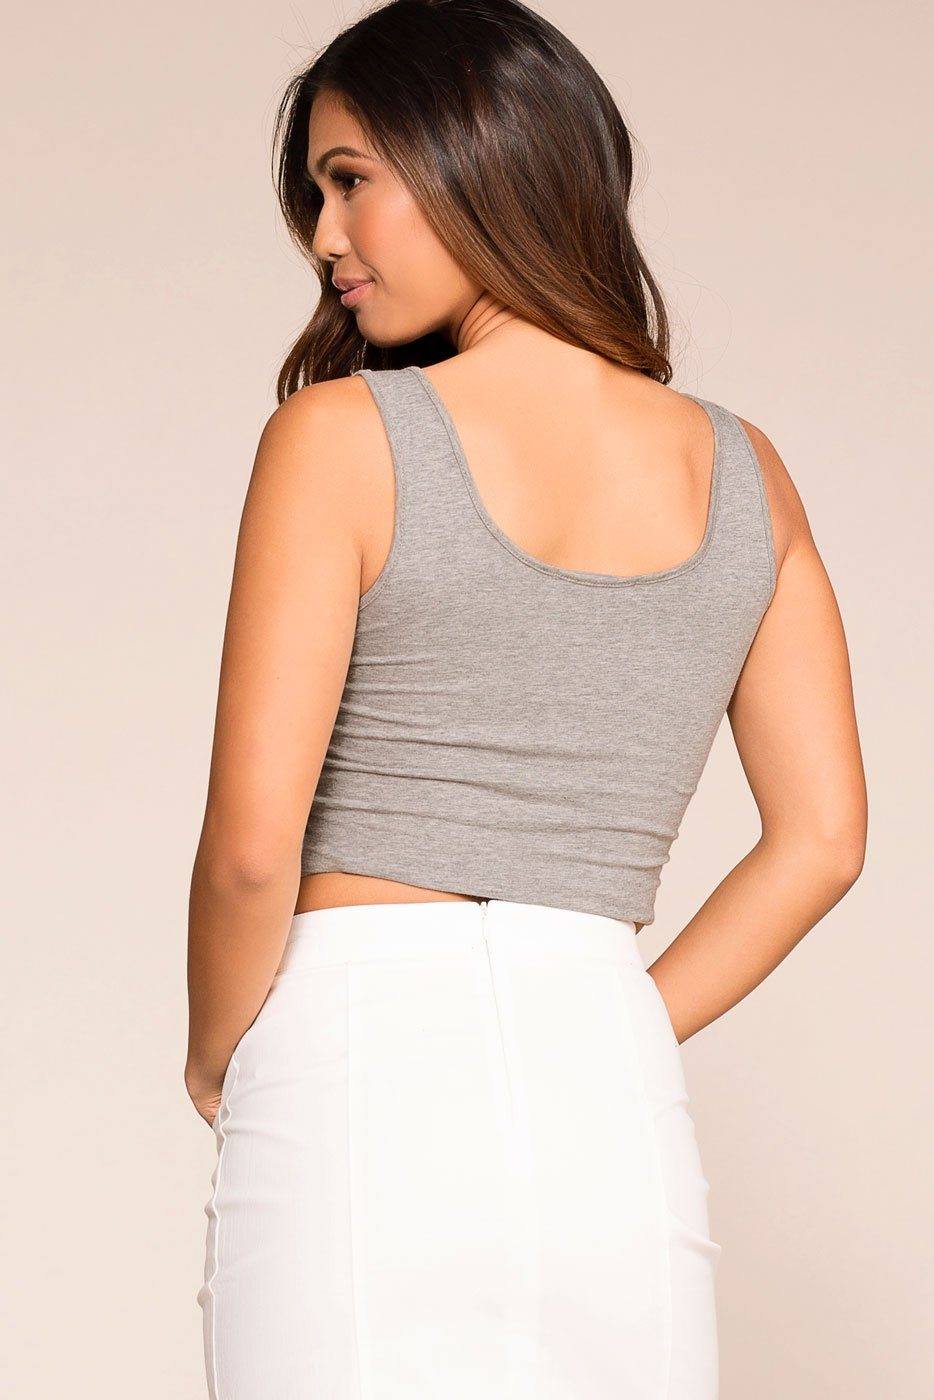 Priceless | Heather Grey | Crop Top | Womens